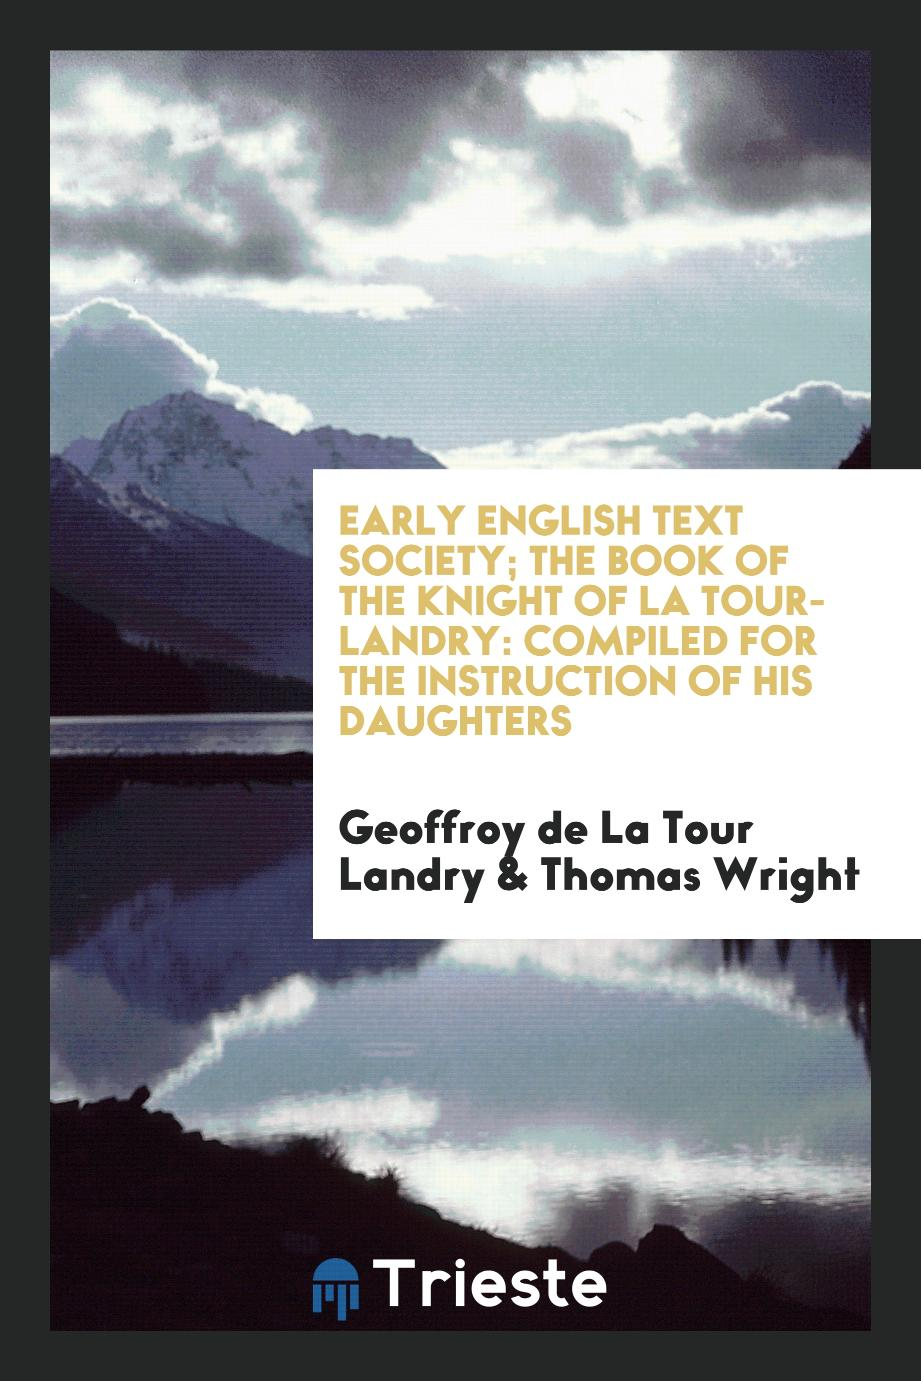 Early English Text Society; The Book of the Knight of La Tour-Landry: Compiled for the Instruction of His Daughters